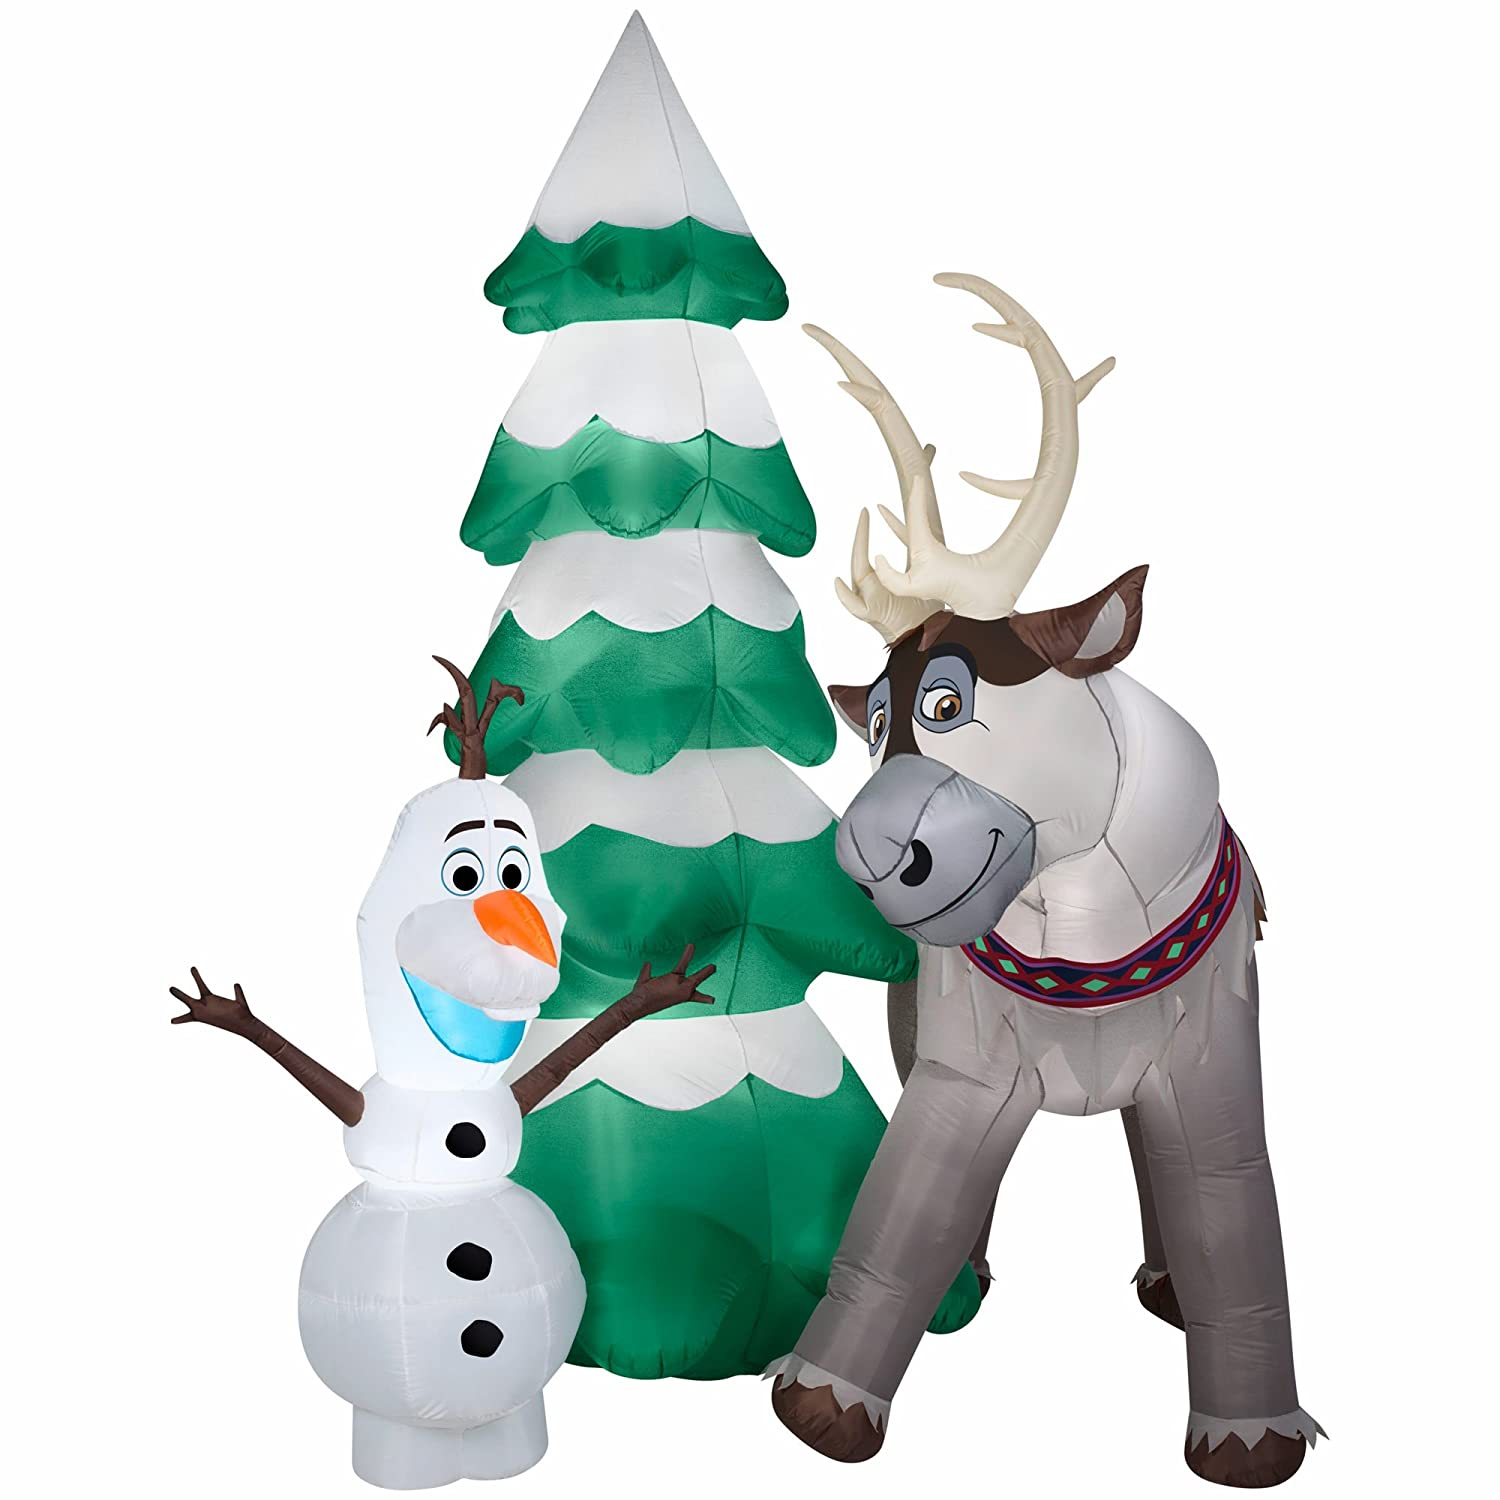 Amazon.com: Gemmy Airblown Inflatable Olaf and Sven the Reindeer ...